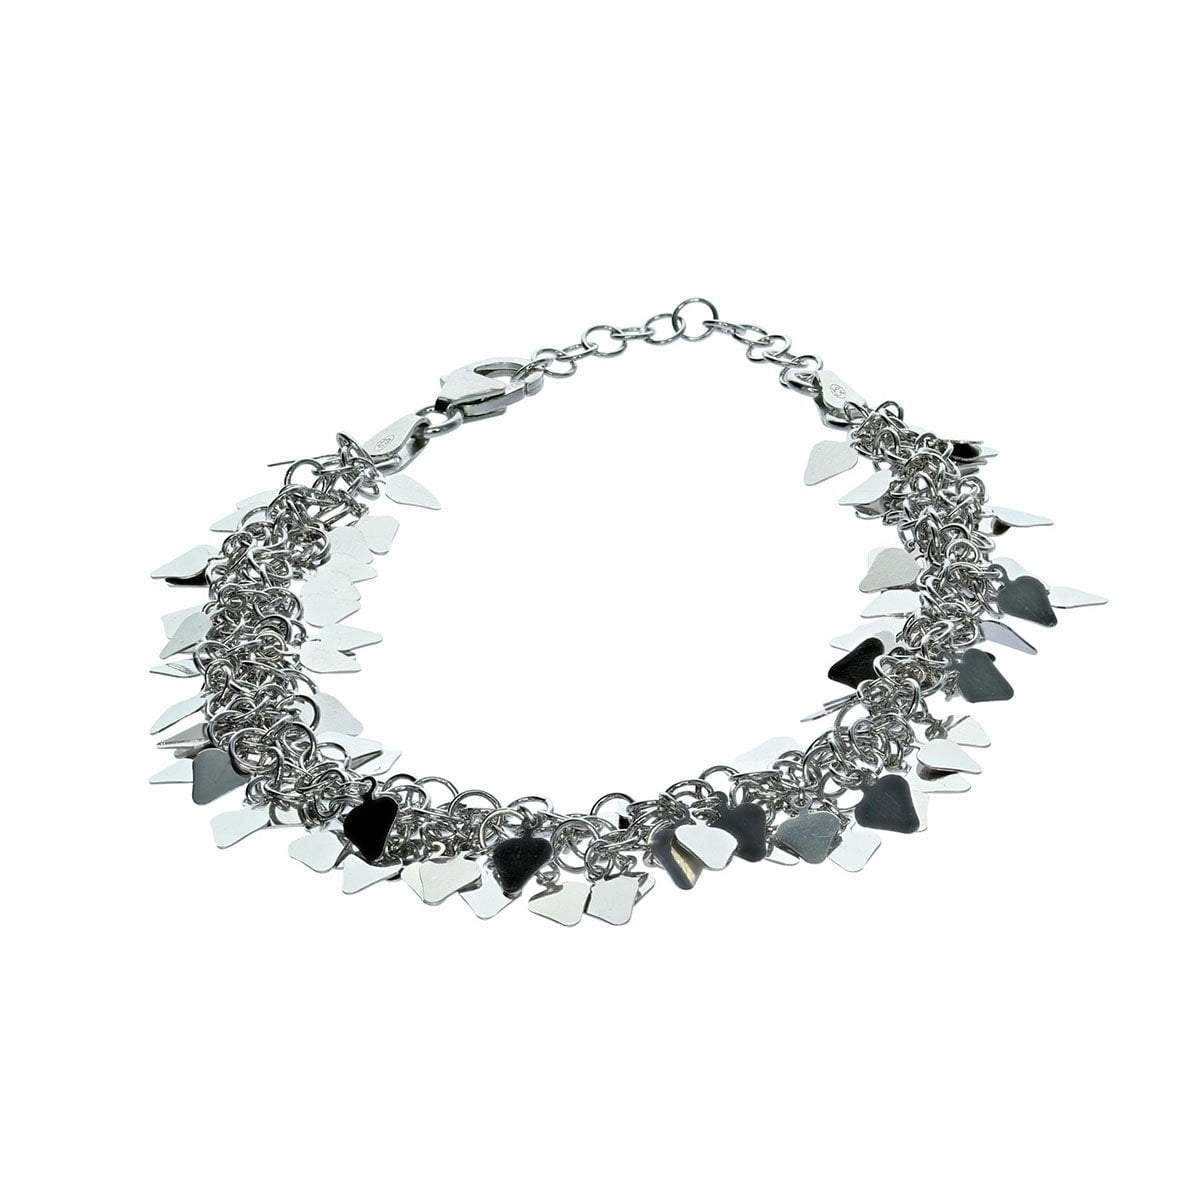 Roma Private Collection Bracelets Default Title / Silver Multi-Heart Tag Bracelet in Sterling Silver with Rhodium Finish 1150211